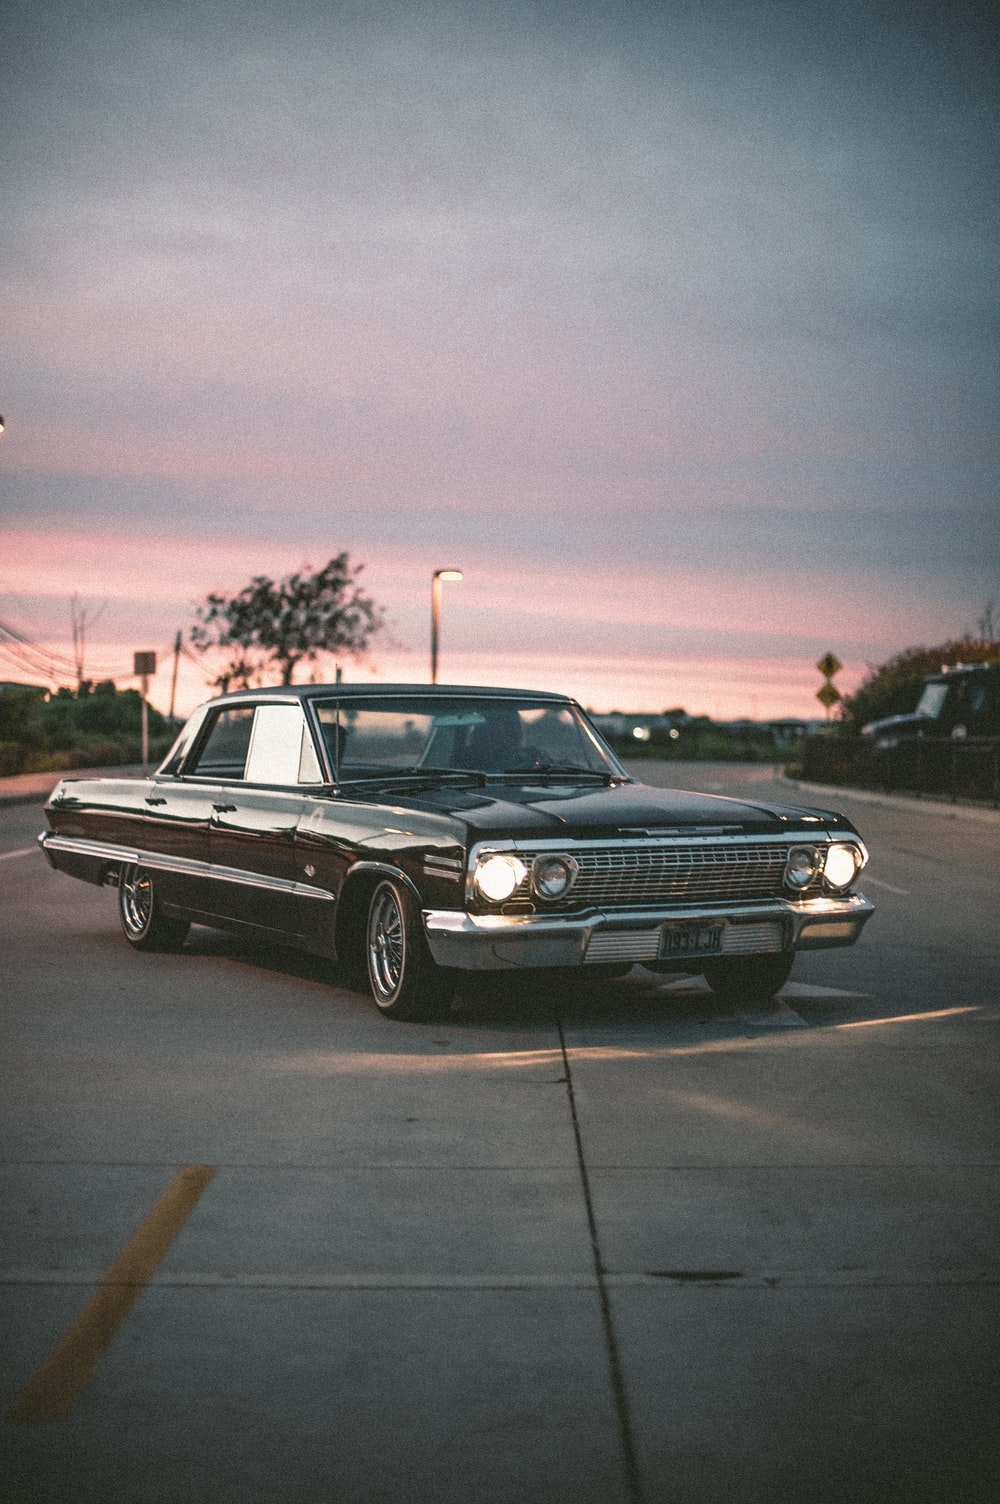 black muscle car on road during sunset